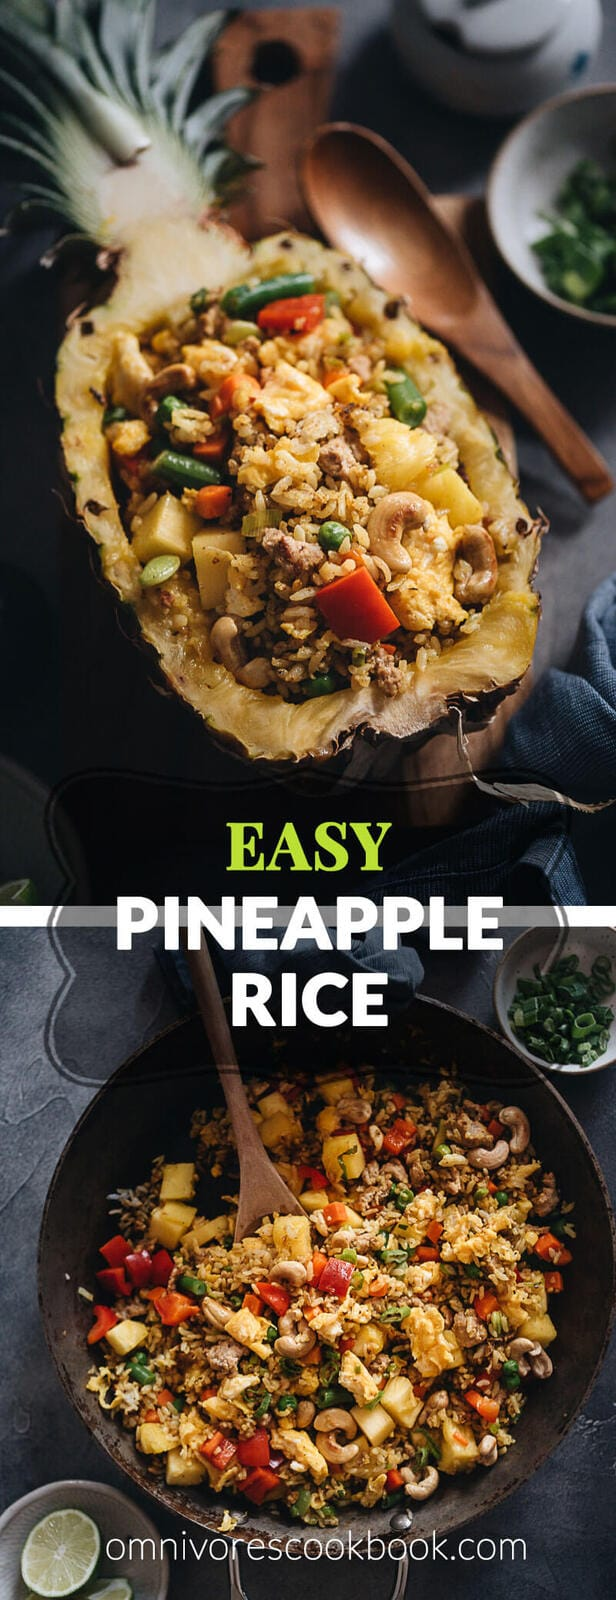 Easy Pianeapple Fried Rice - This super easy pineapple fried rice uses simple ingredients to create the maximum flavor. Learn all the secrets of making perfect fried rice that tastes even better than the restaurant version, and the one secret ingredient to make the best pineapple fried rice. {Gluten-Free adaptable}